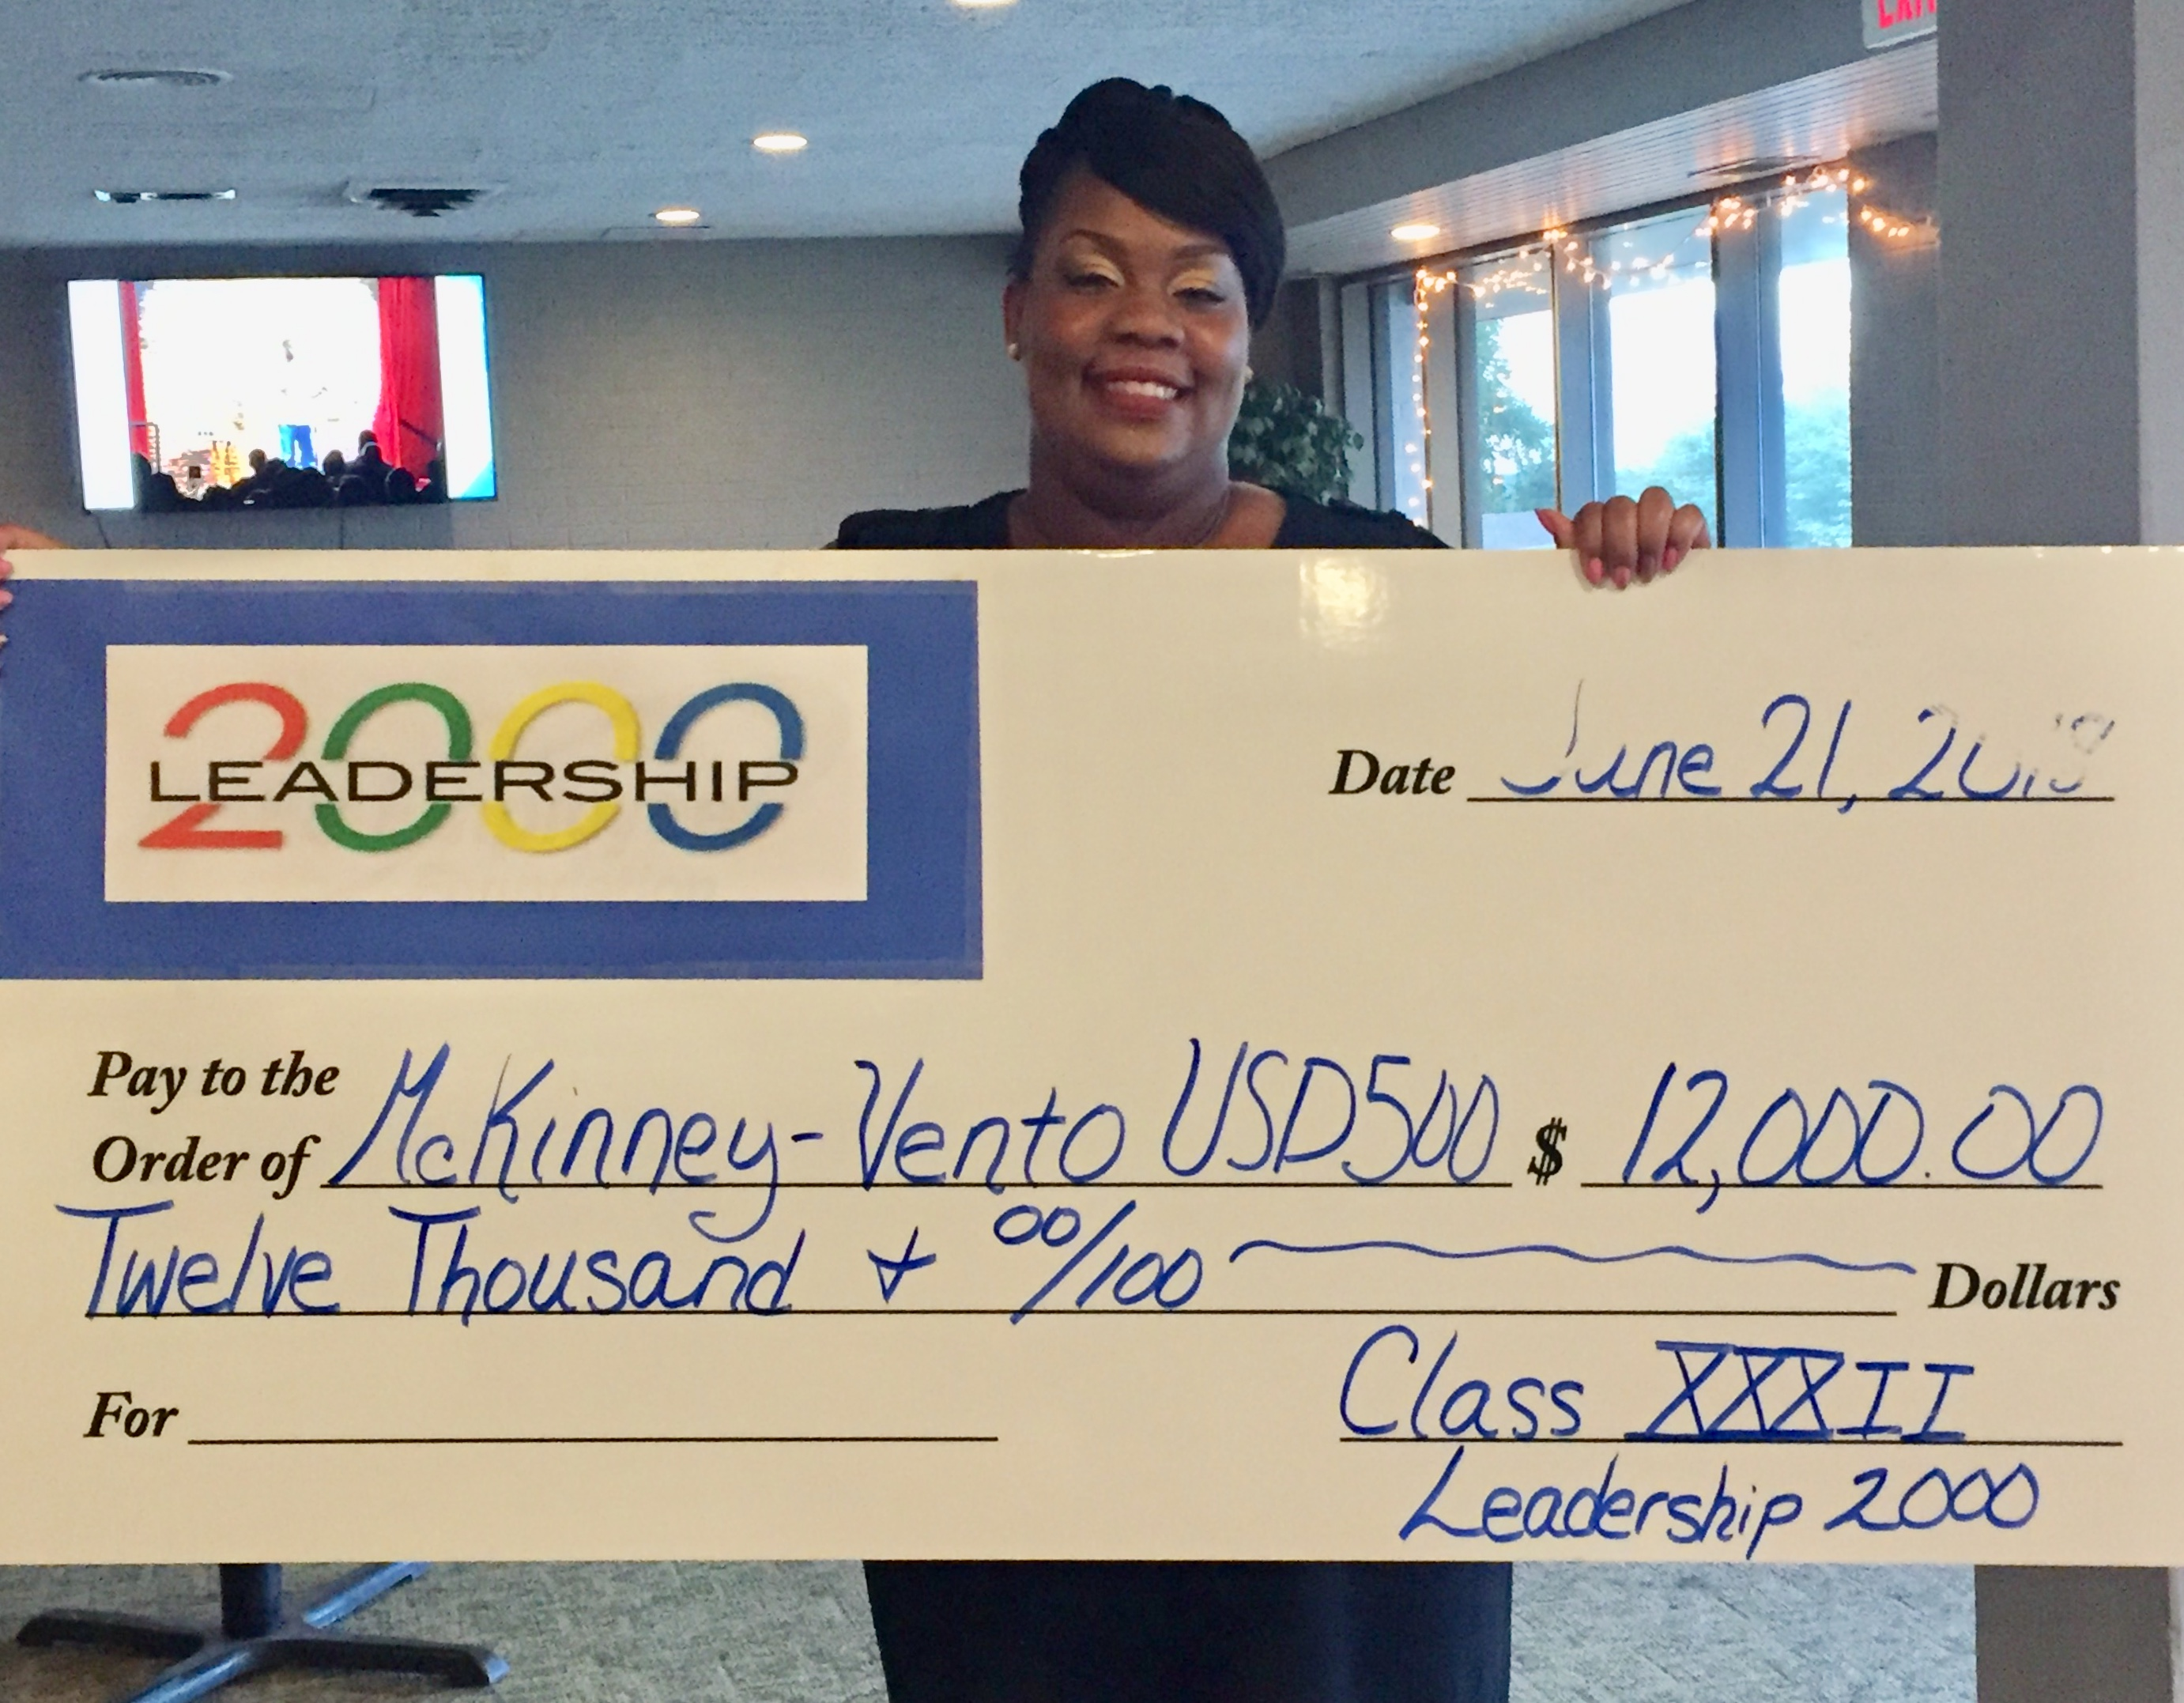 McKinney-Vento Award of $12,000 from Leadership 2000